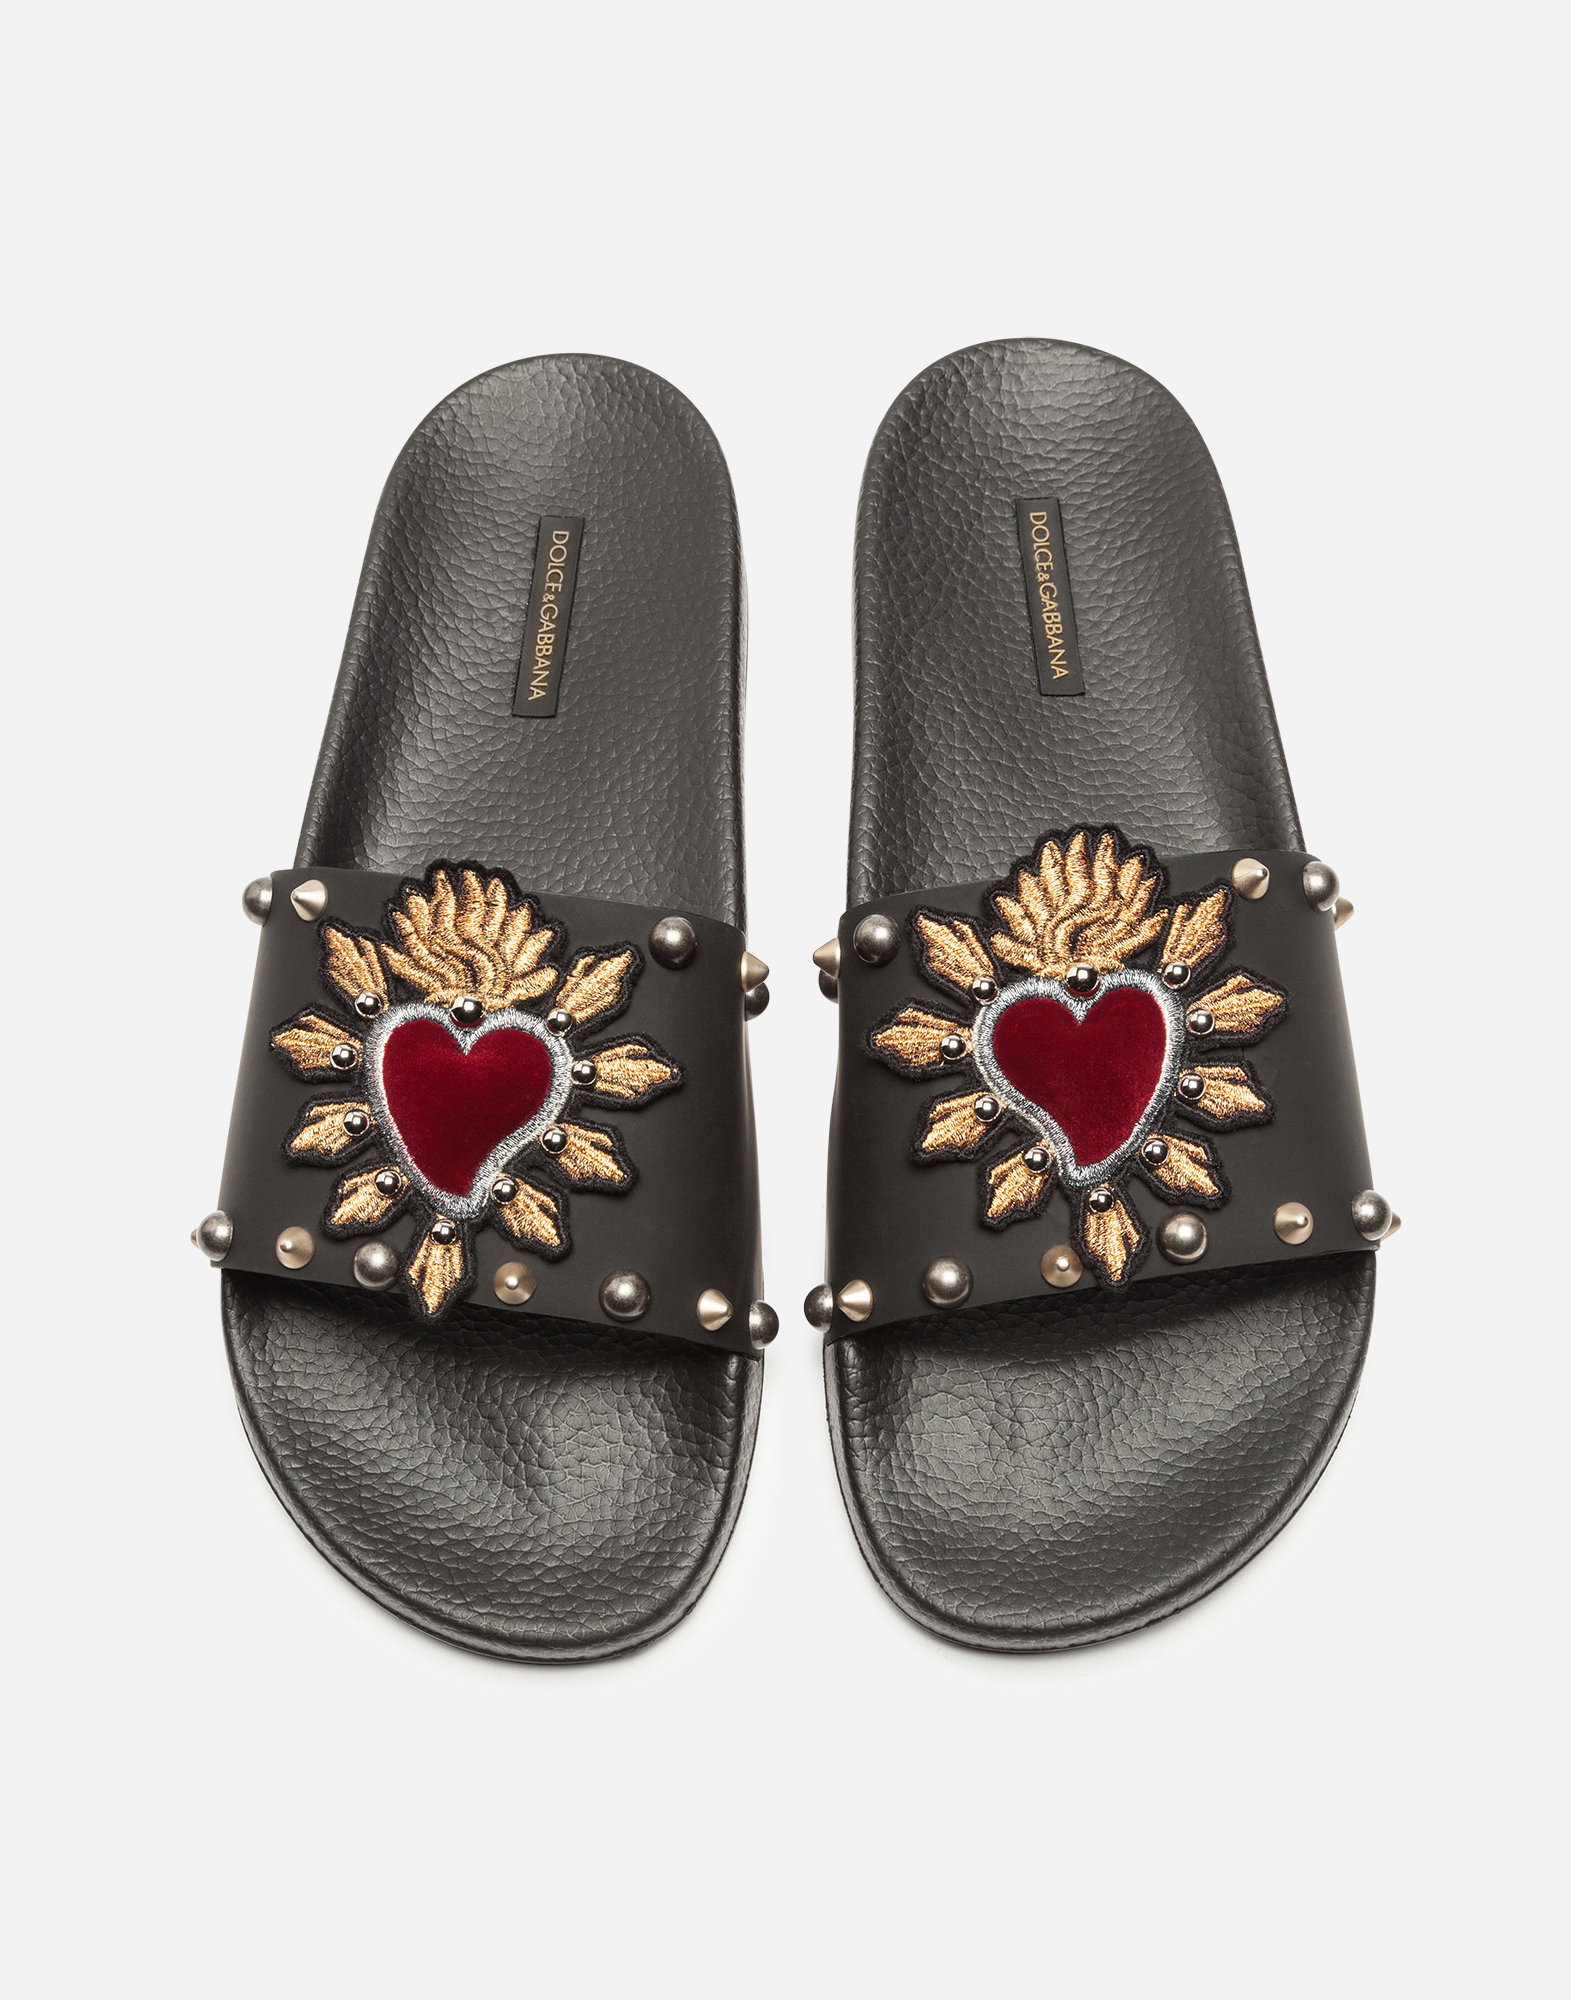 SLIPPERS IN RUBBER AND CALFSKIN WITH HEART PATCHES